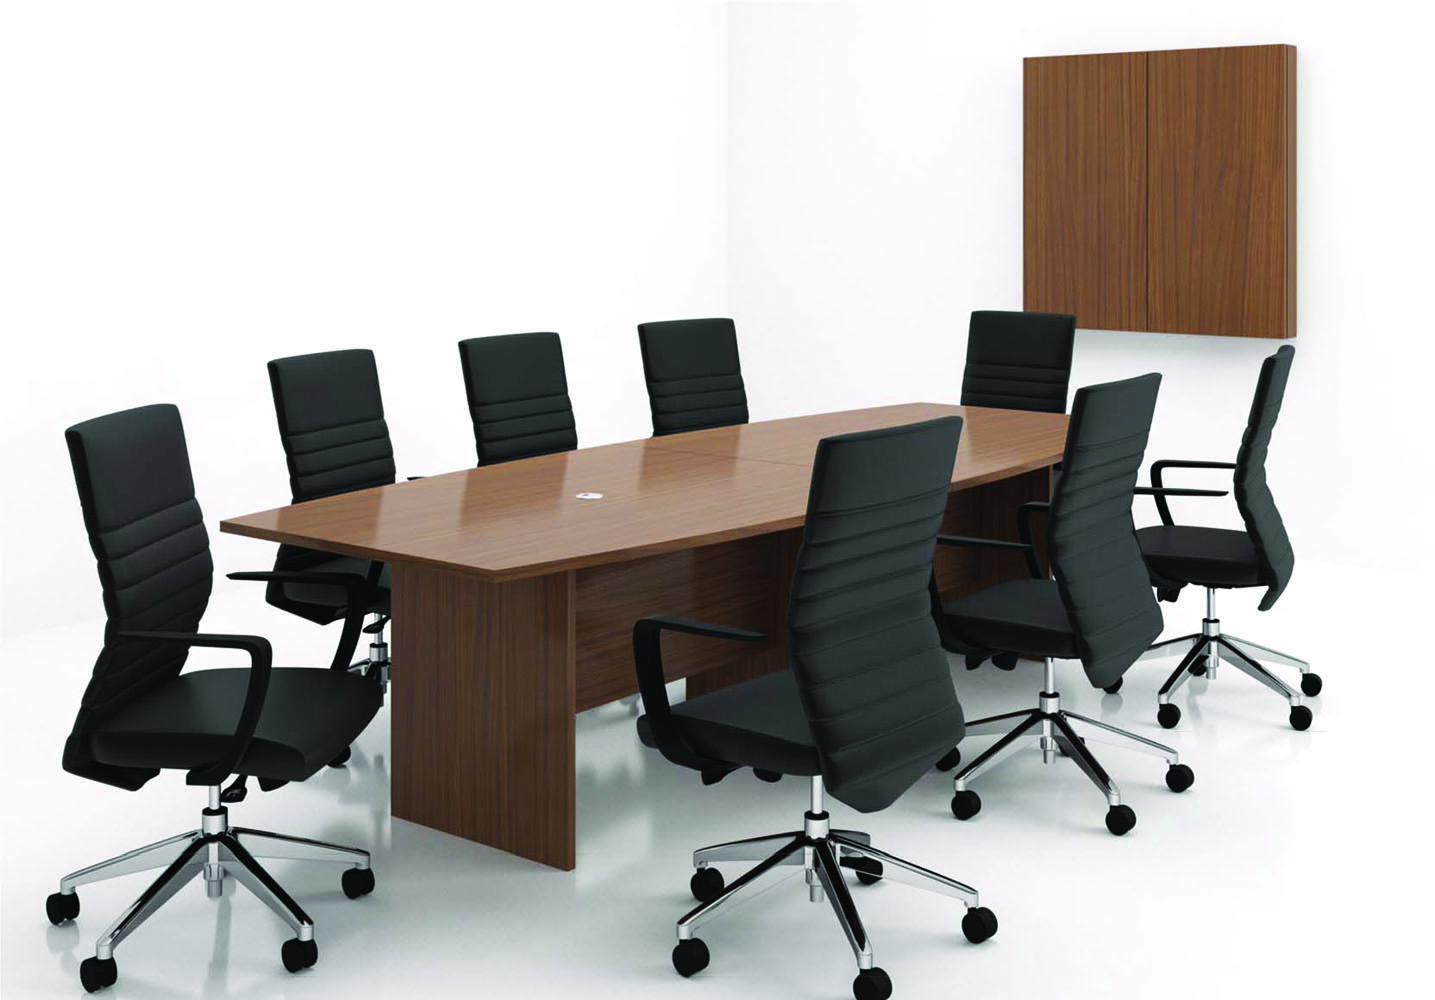 Conference Room Setup - Meeting Room Furniture - Office Furniture Sets